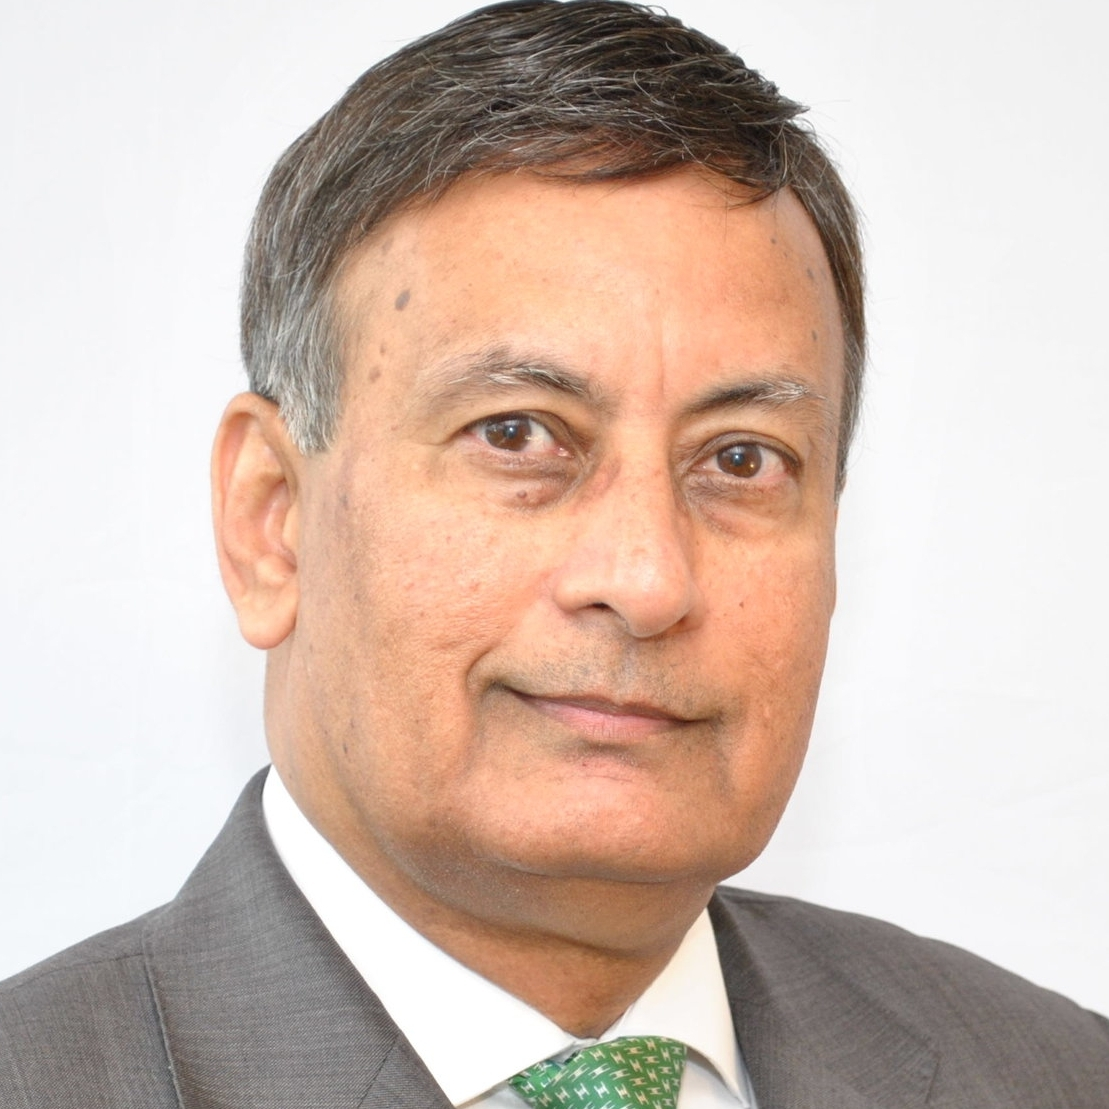 "<span style=""color:#444;""><strong>Husain Haqqani</strong>Fmr. Ambassador of Pakistan to US & Director, SC Asia at Hudson Institute</span>"